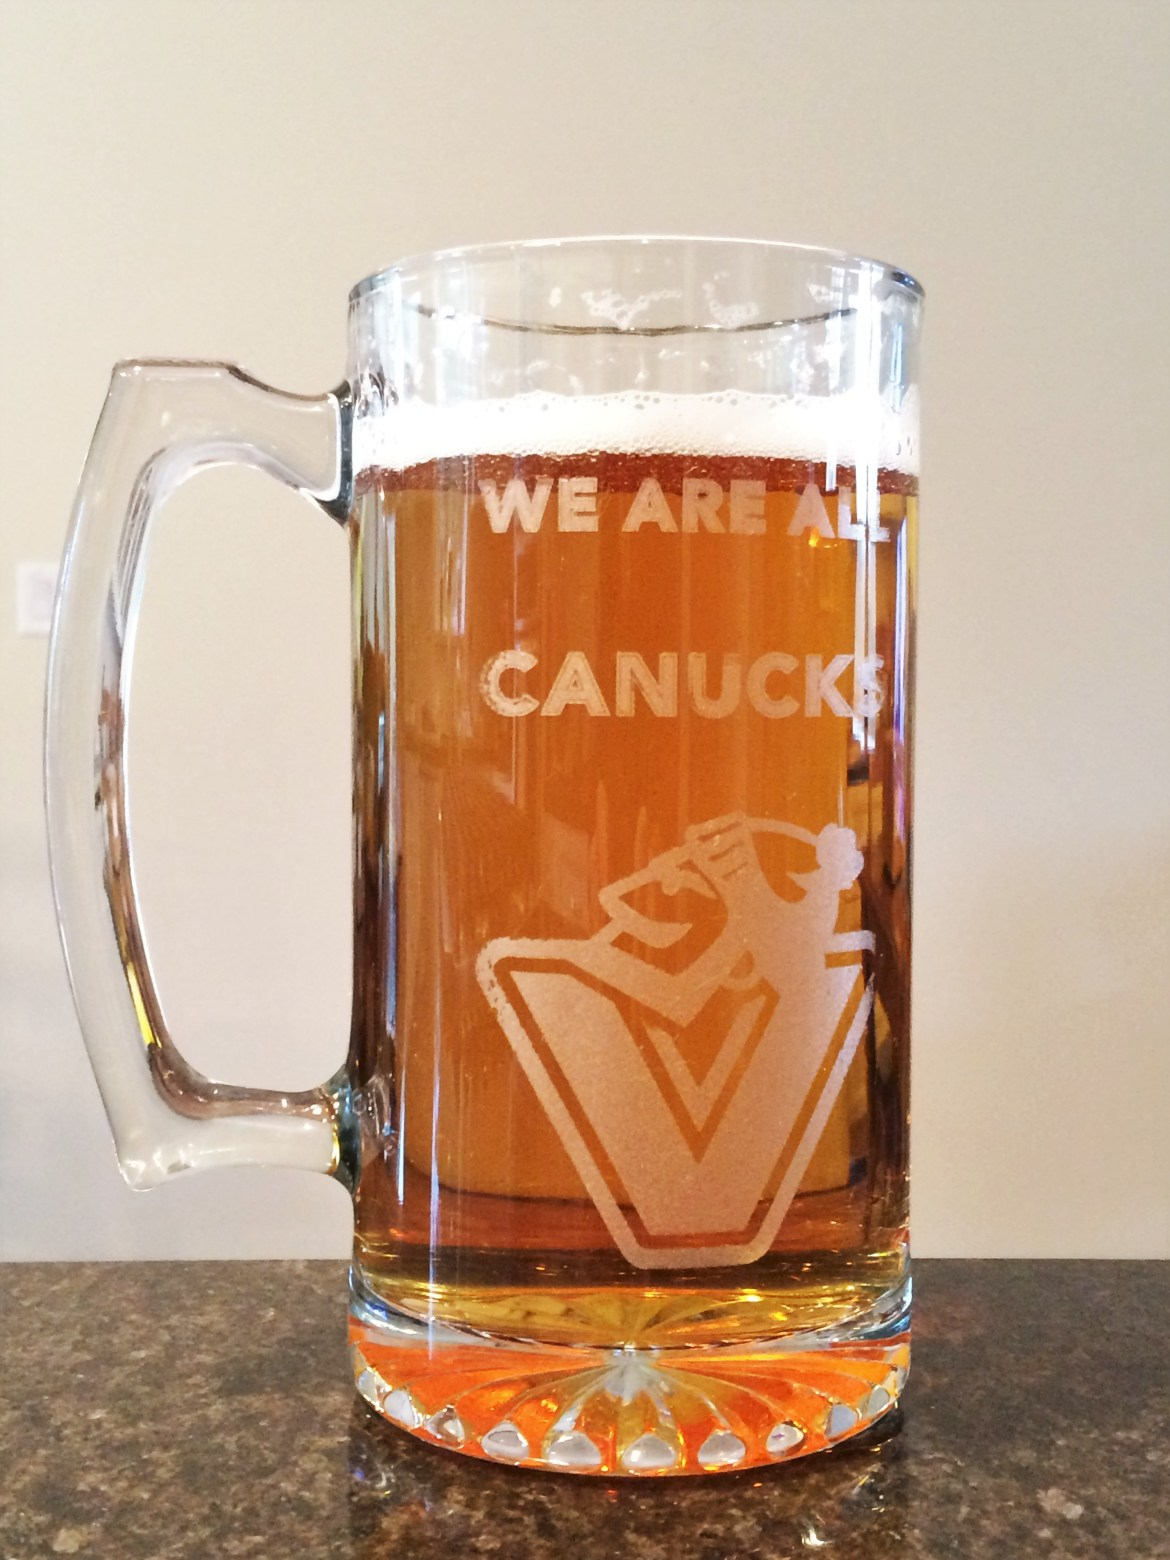 Engraved Canucks Glass Beer Mug